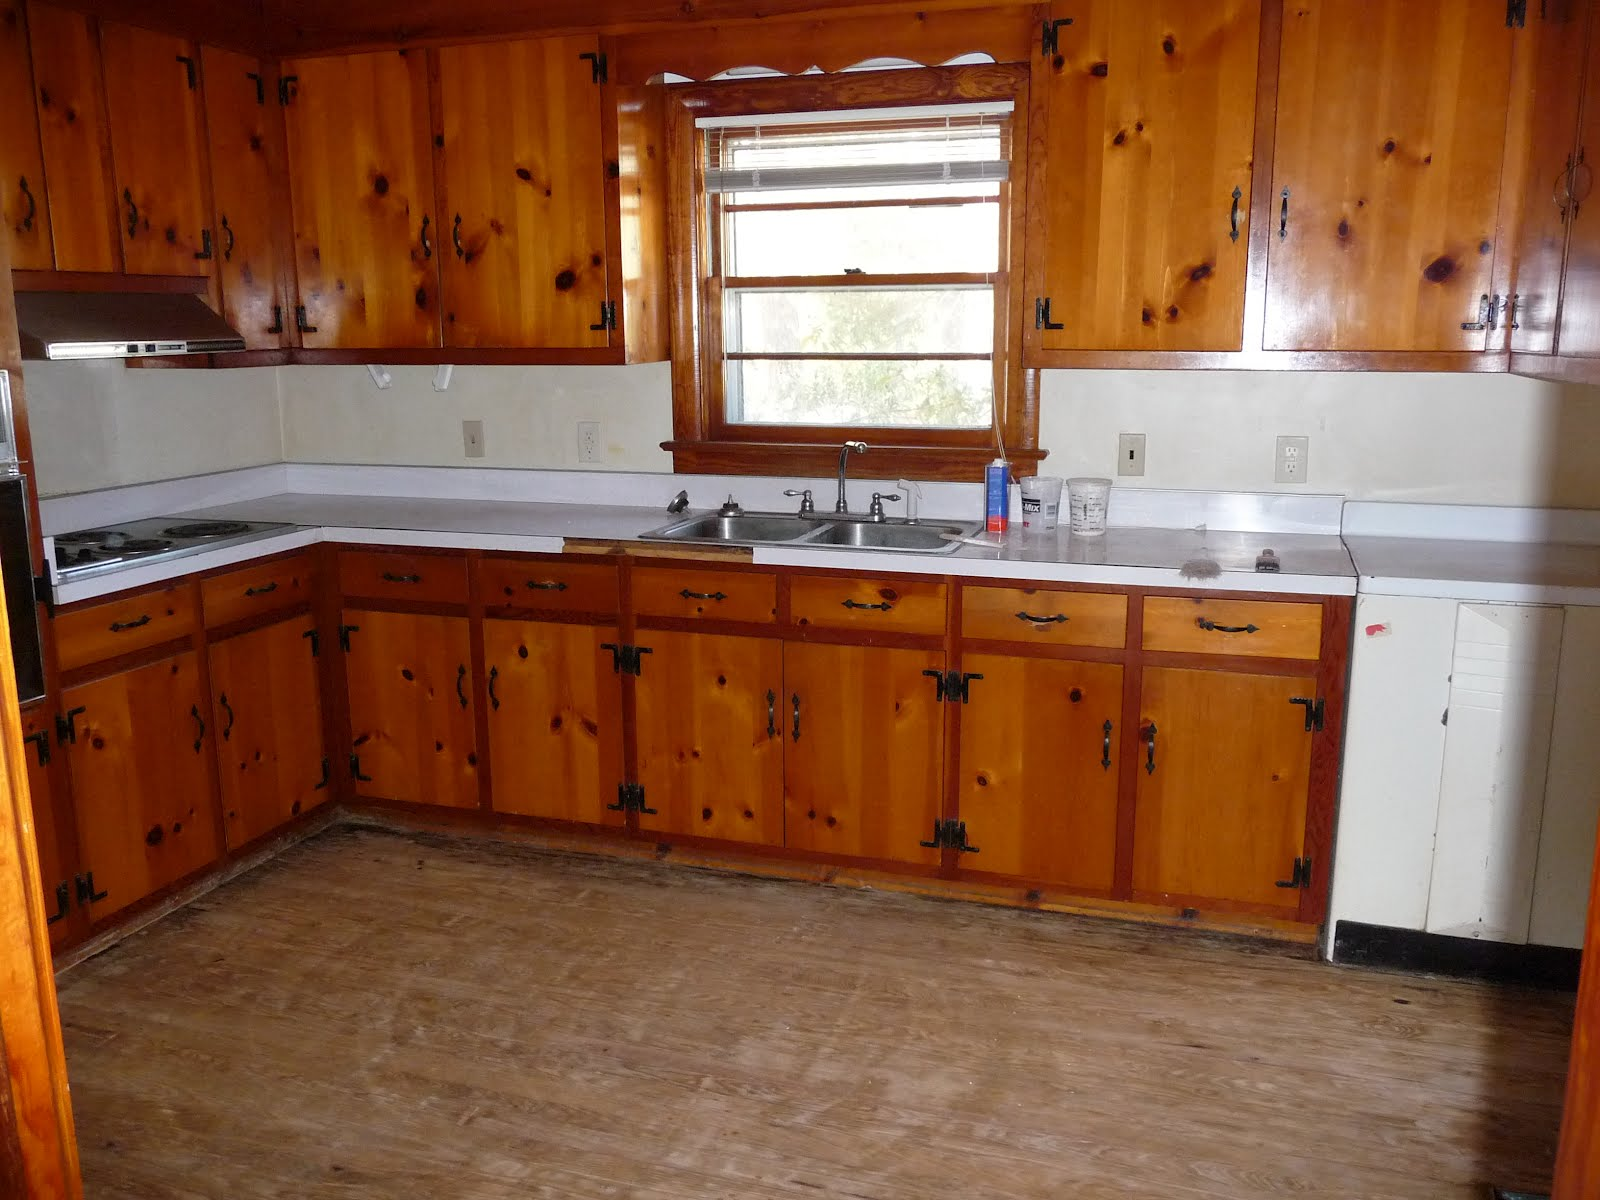 1950 Kitchen Furniture Balding Brothers Project Update A Traditional 1950s Ranch